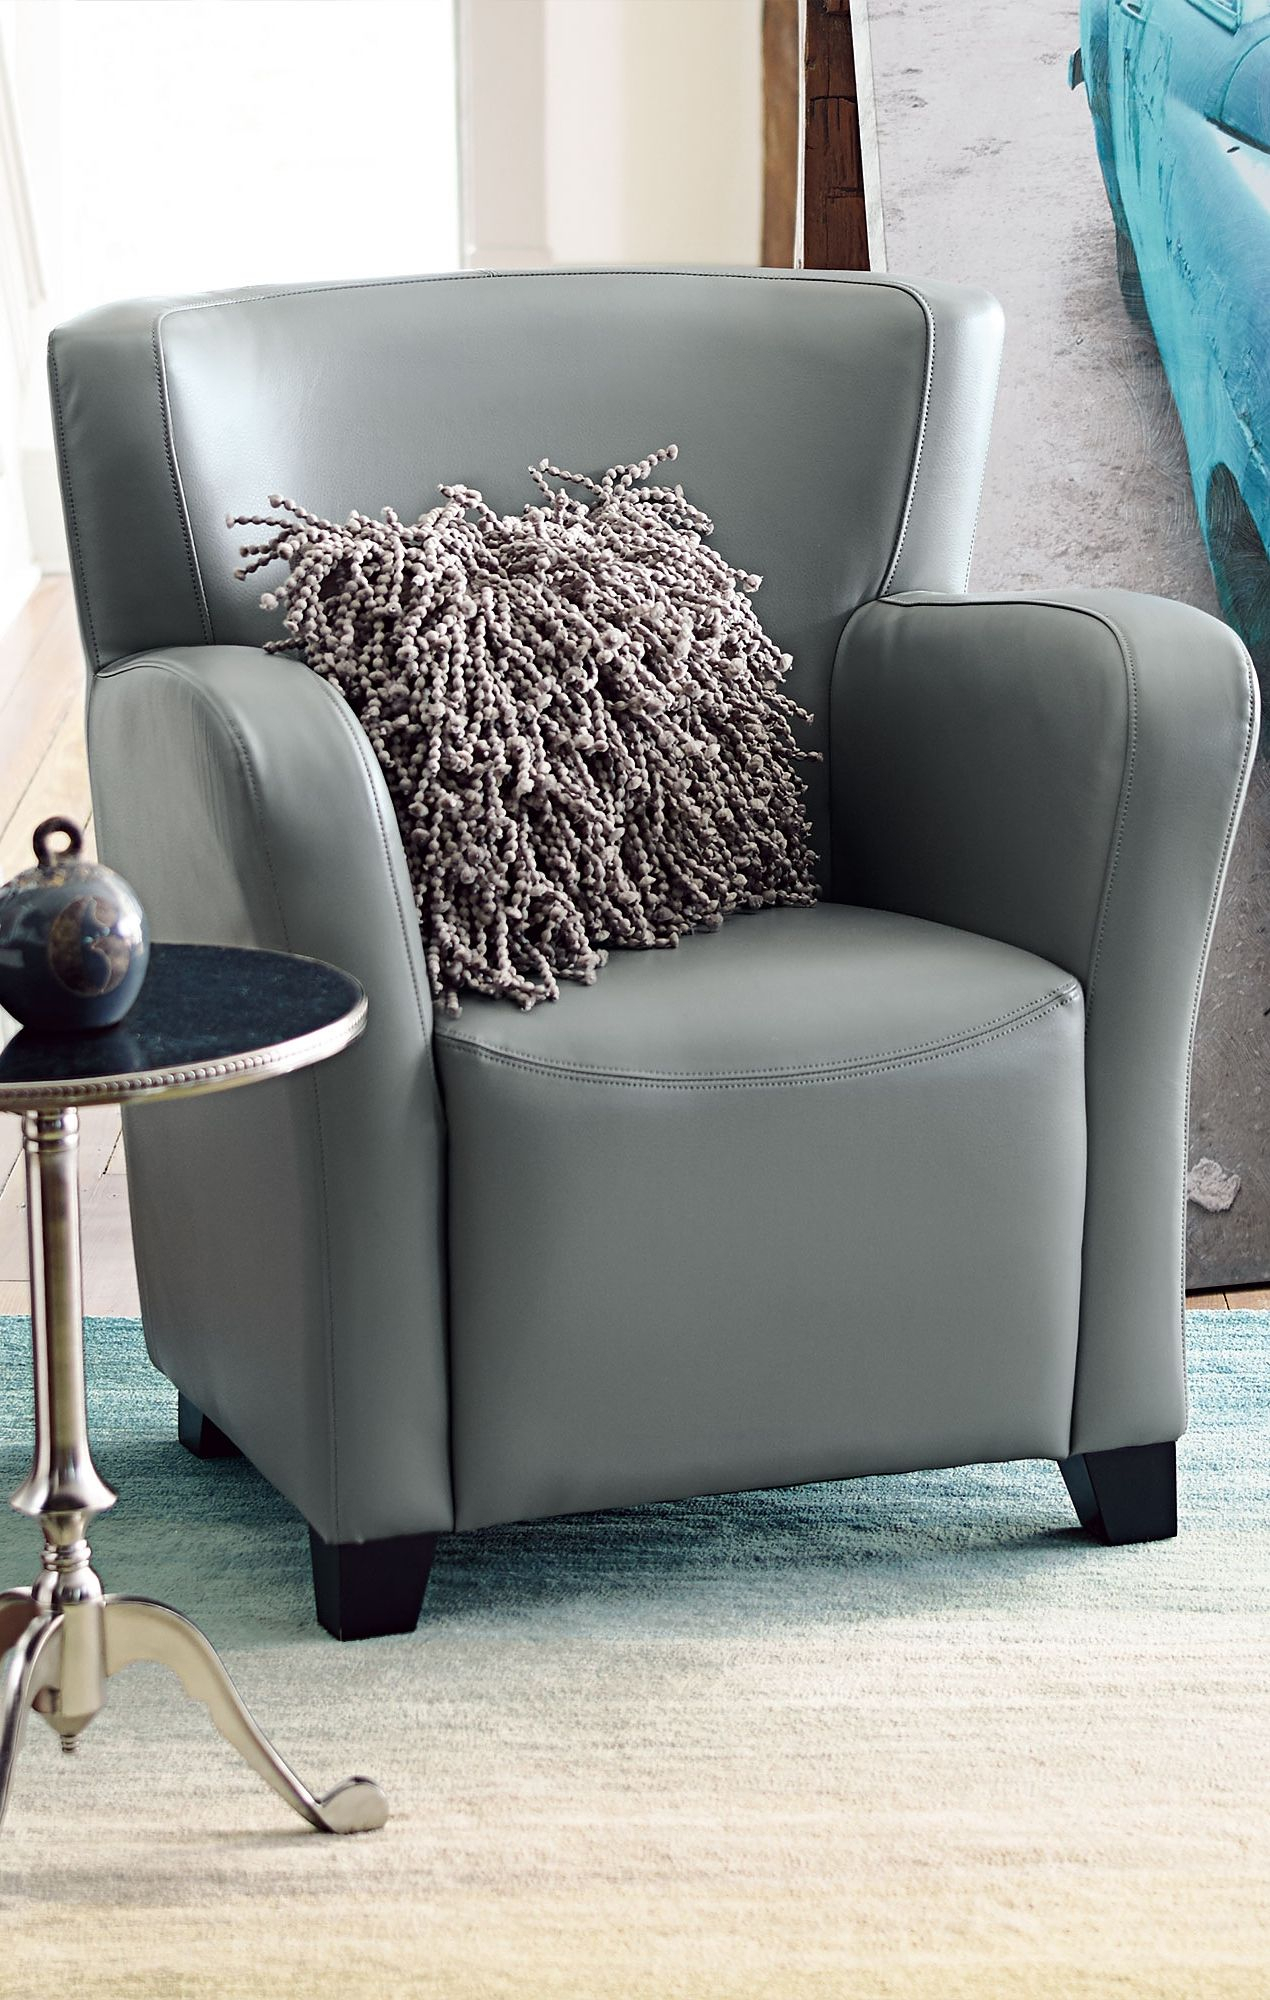 Our Oxford Leather Chair Sports A Space Friendly Design With Throughout Grandin Leather Sofa Chairs (Image 16 of 20)